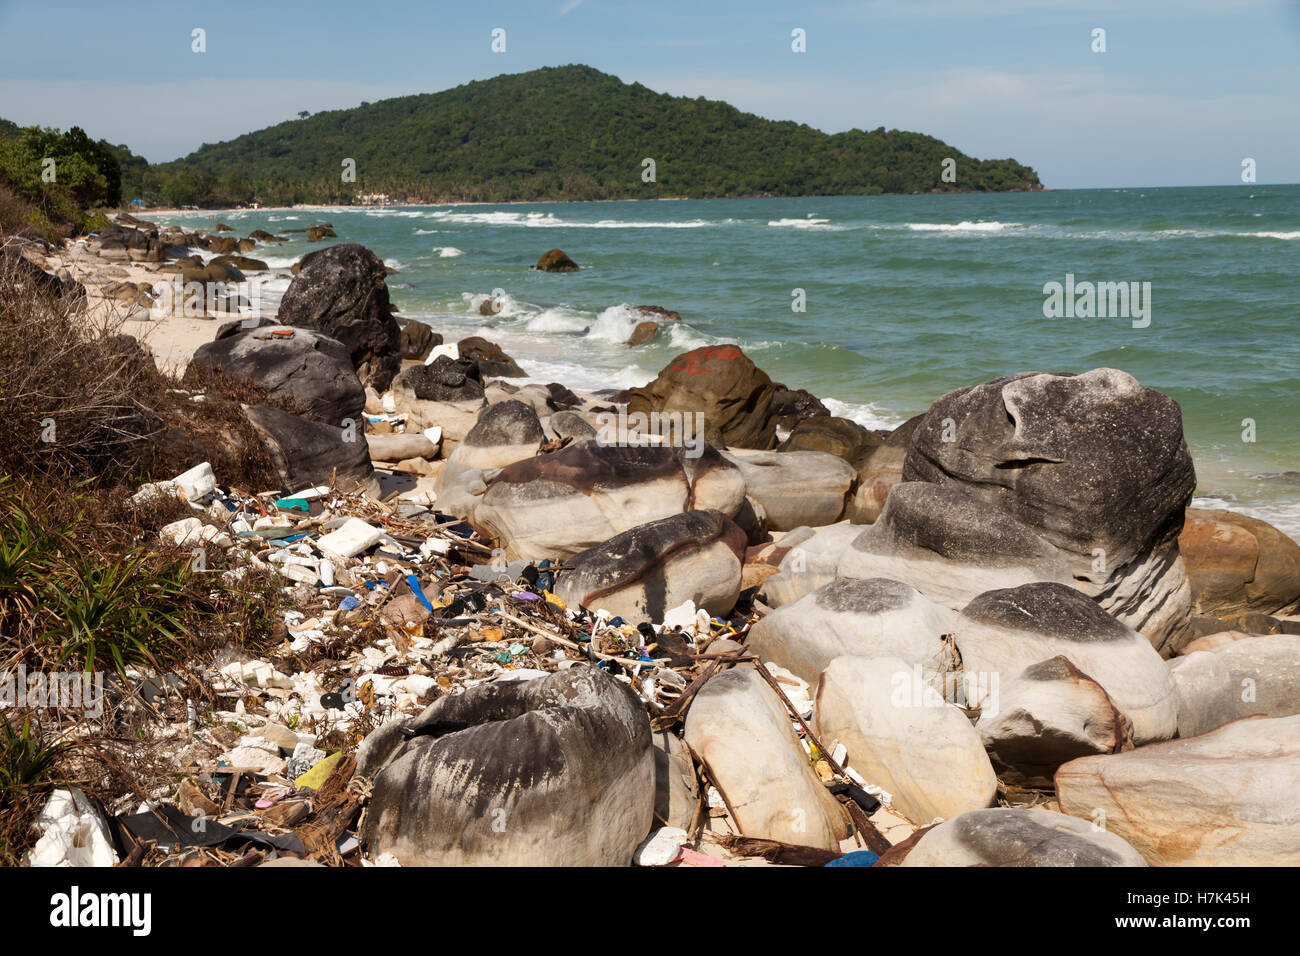 Pollution: garbages, plastic, and wastes on the beac - Stock Image